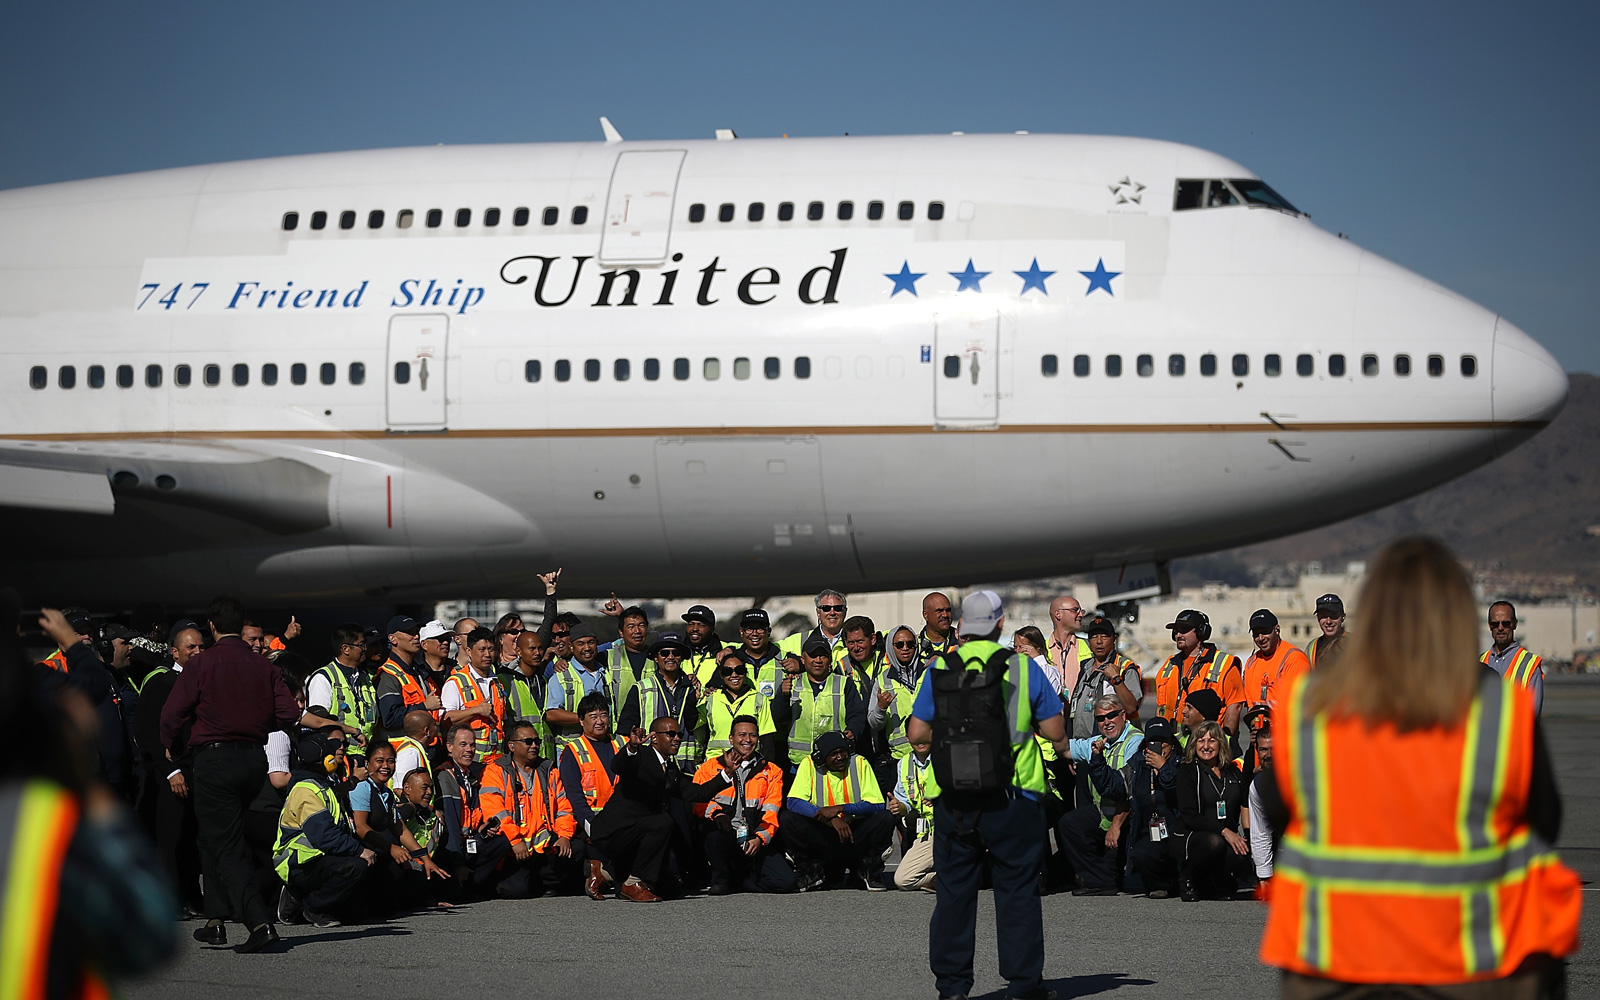 The Last United Airlines Boeing 747 Flight Just Landed in Honolulu